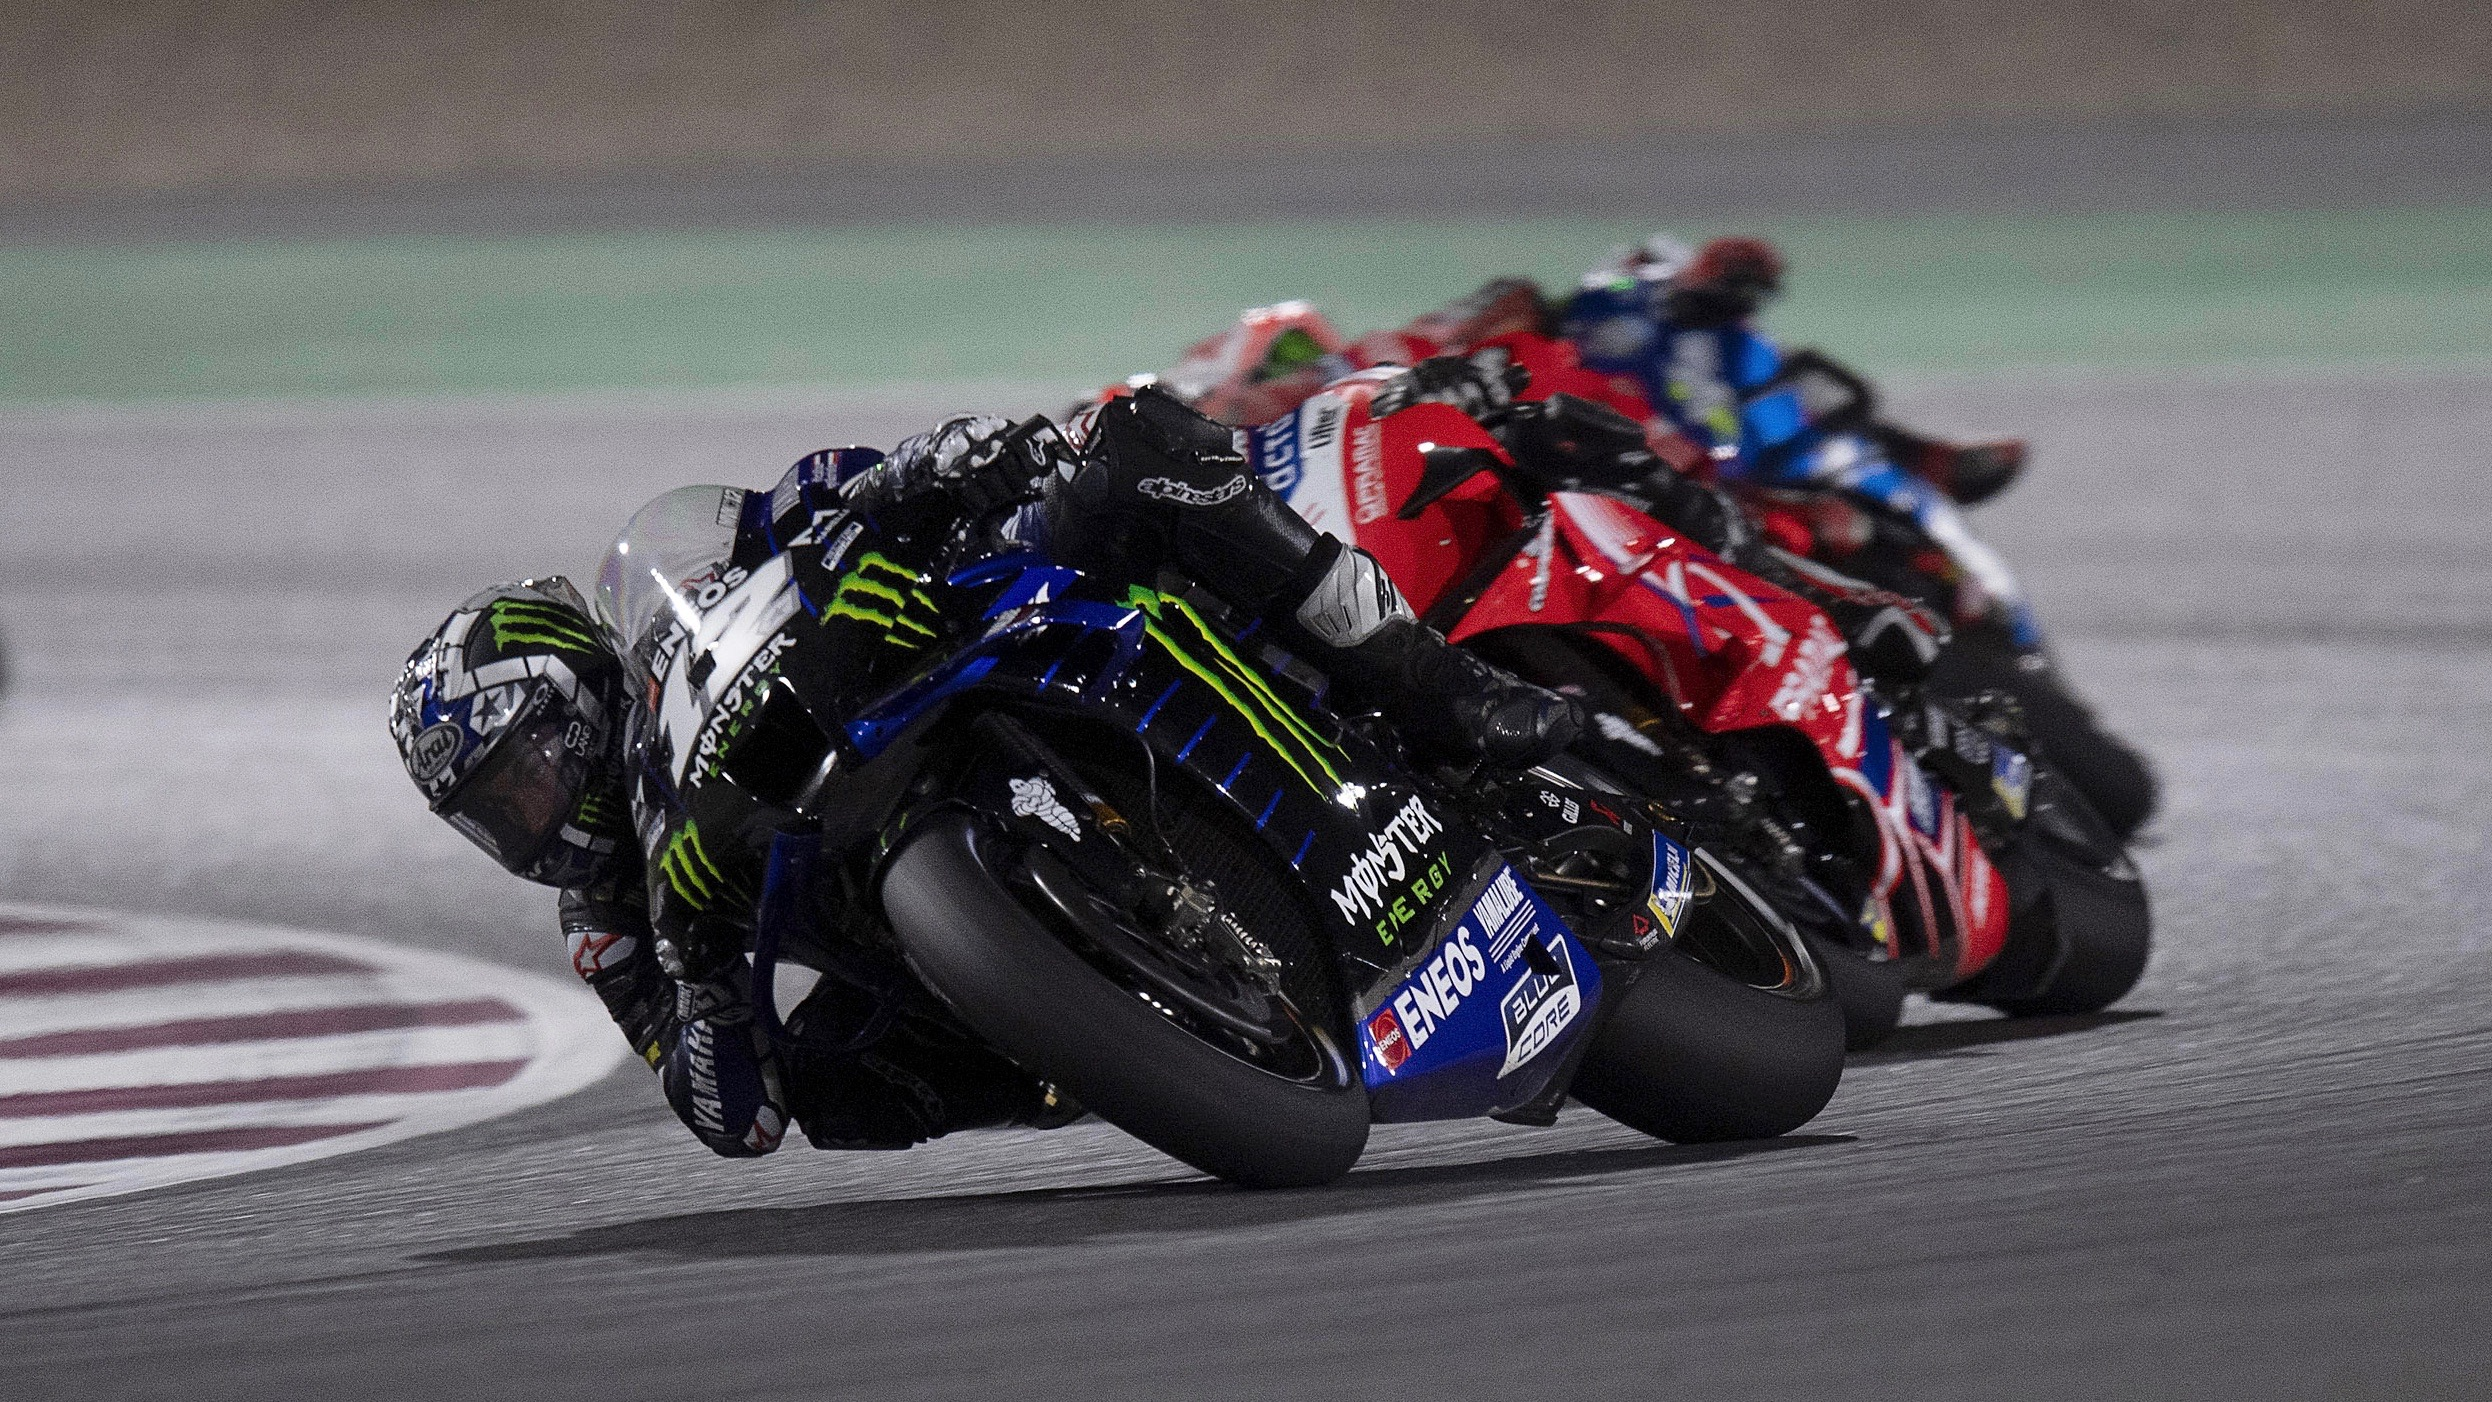 MotoGP Doha live stream 2021: how to watch race online from anywhere thumbnail